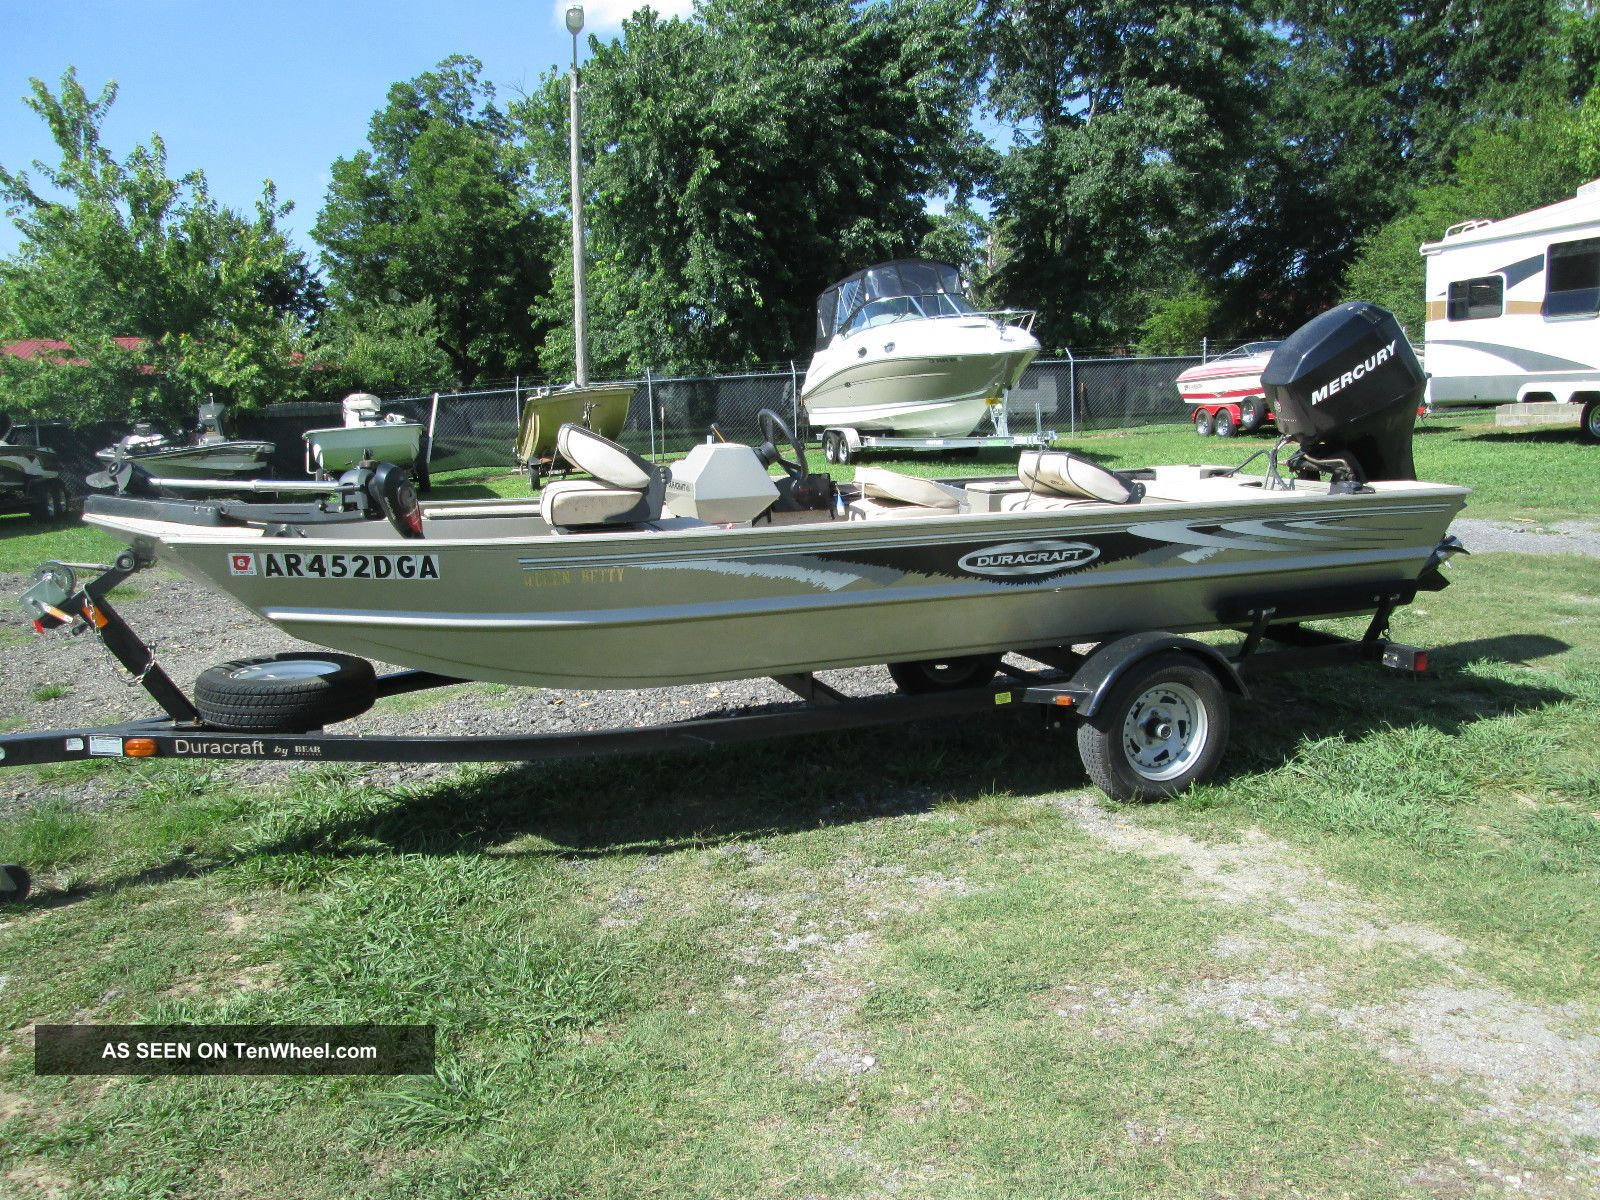 2007 Duracraft 1650 Crappie Bass Fishing Boats photo